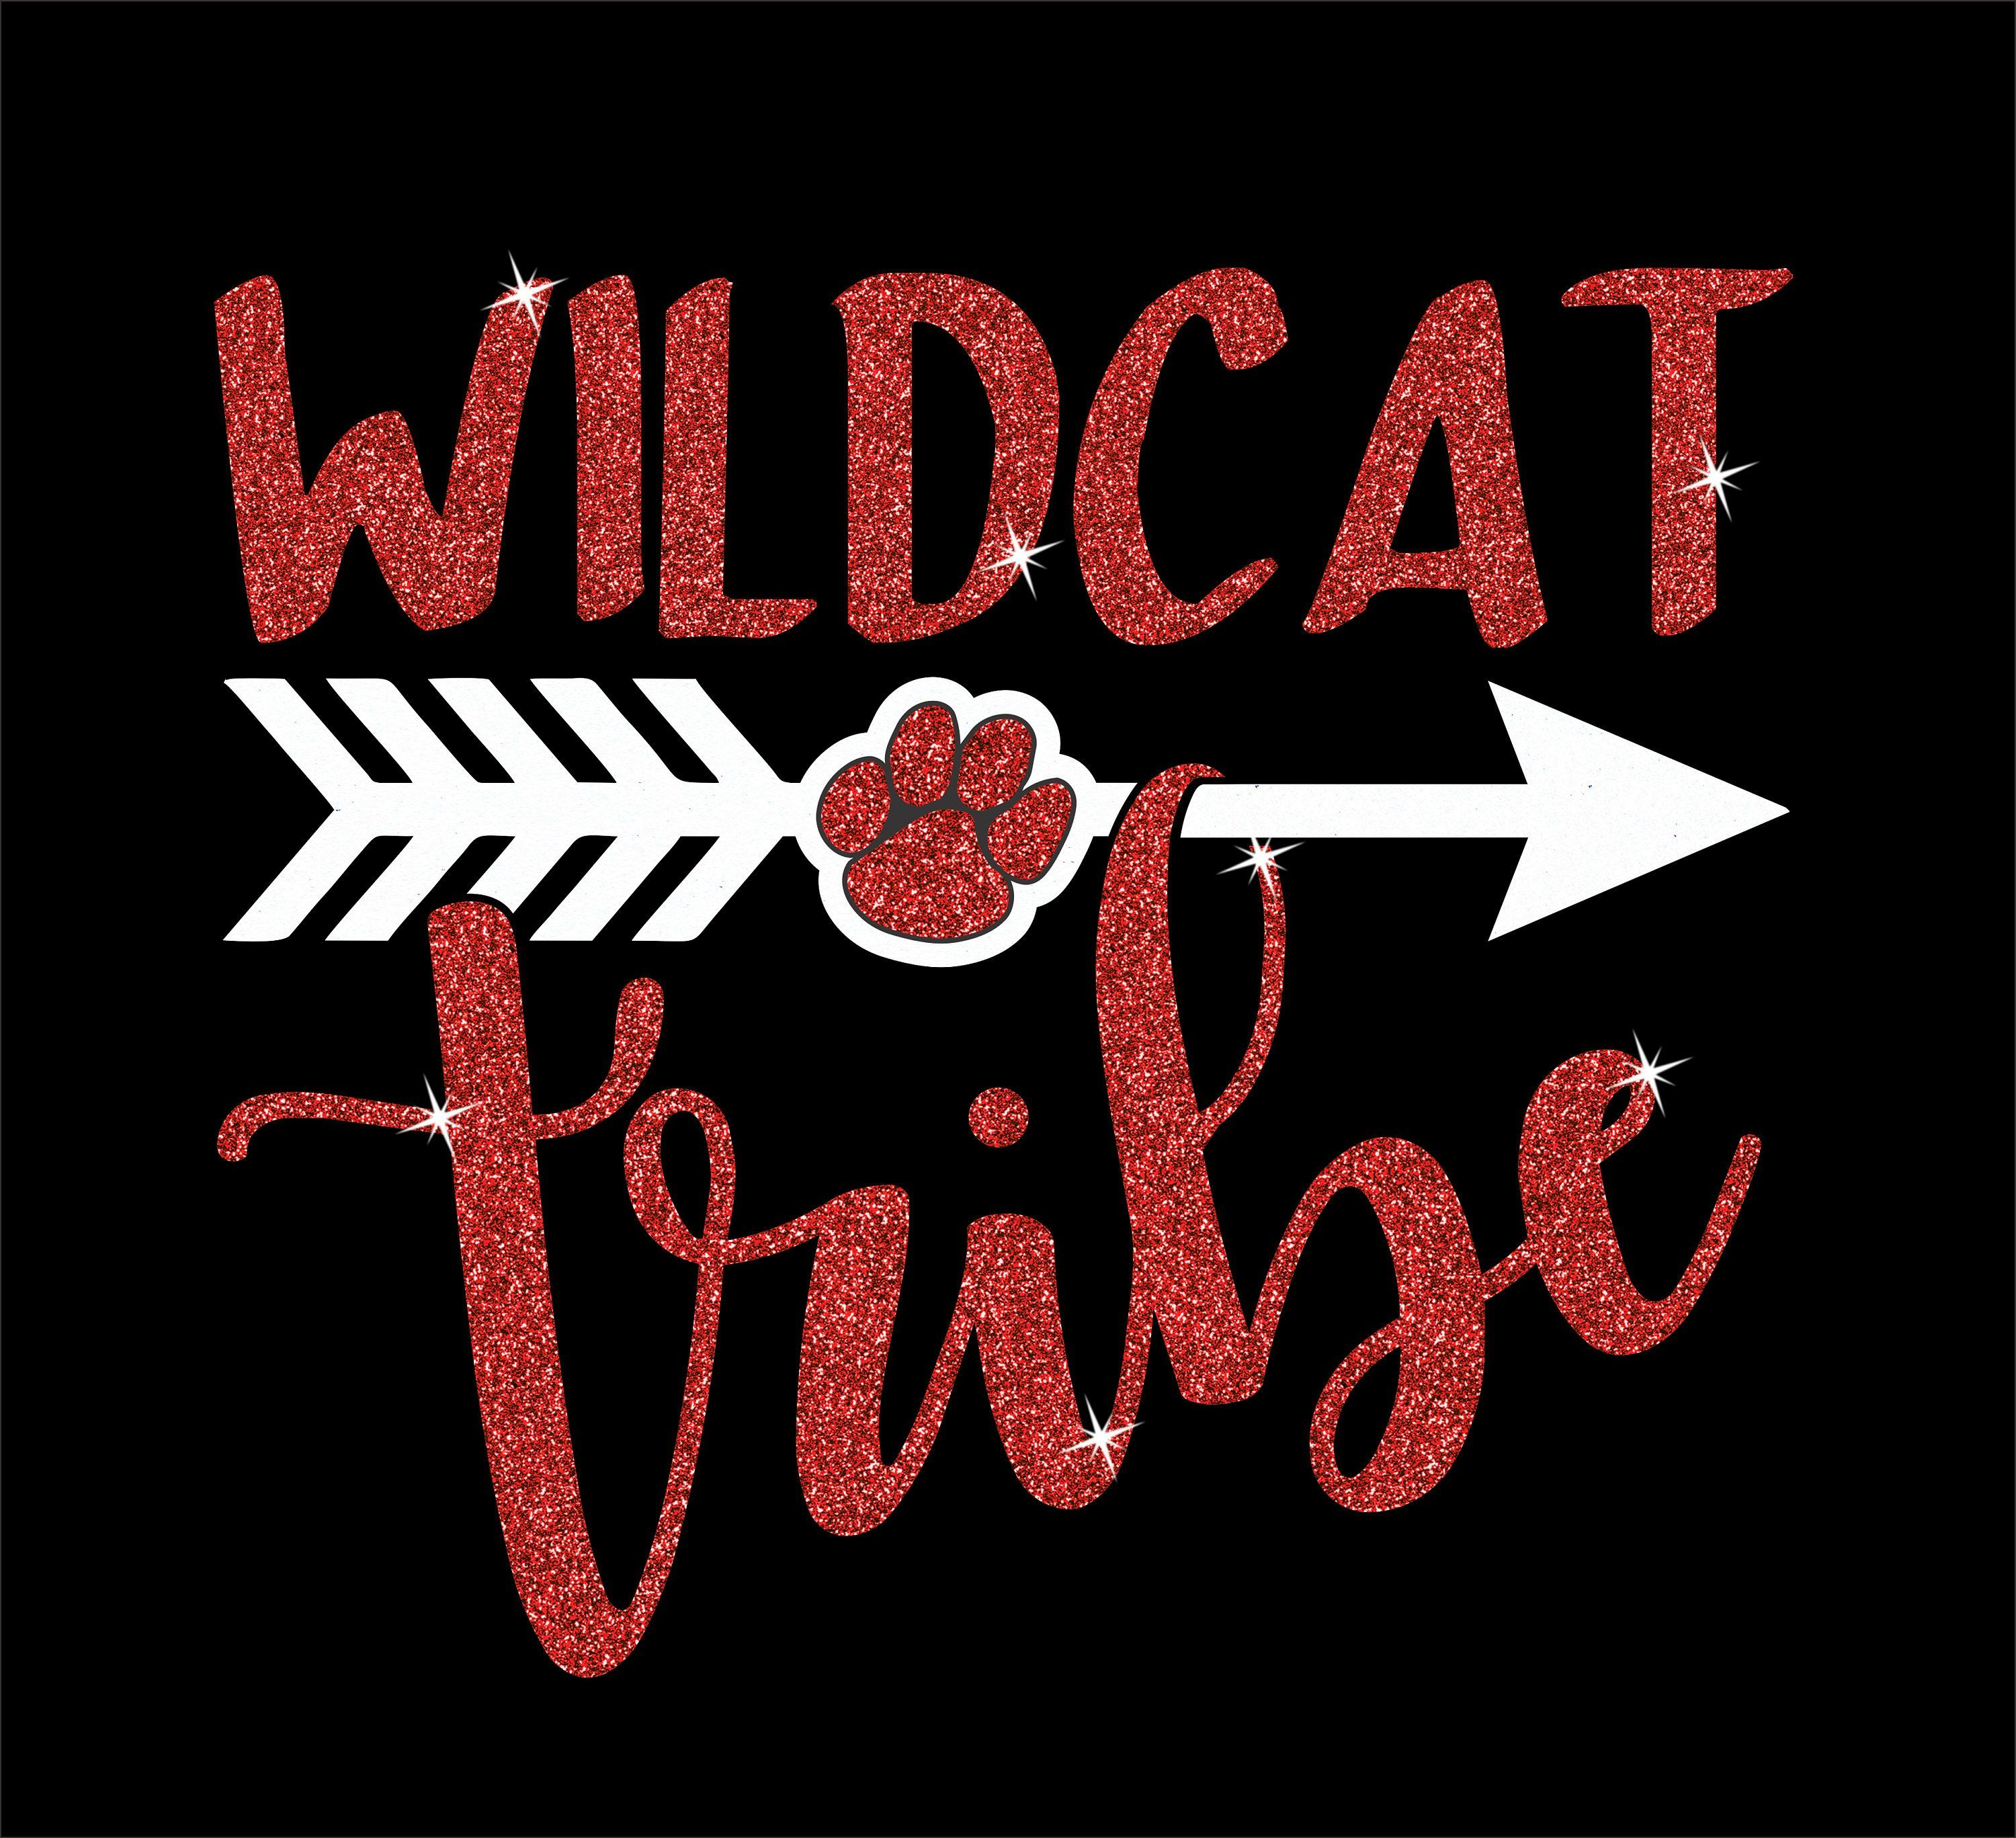 Wildcat Tee Wildcat Tribe Glitter Tee Wildcat School Tee Etsy In 2020 School Spirit Shirts Designs School Spirit Shirts School Tees